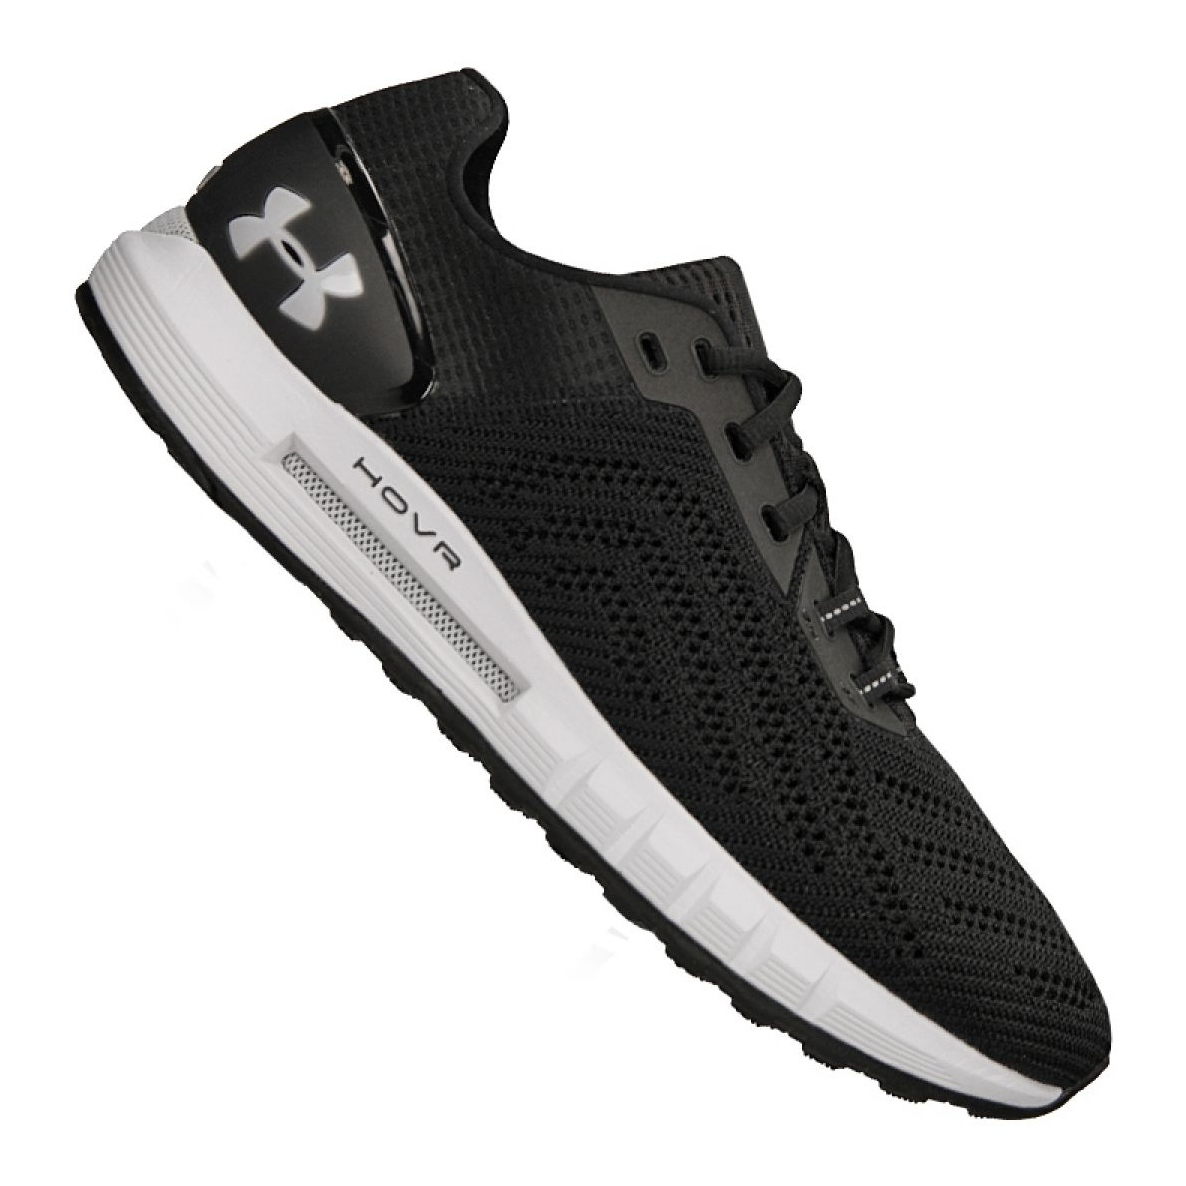 sports shoes f4f9f 3c850 Under Armour black Under Armor Hovr Sonic 2 M running shoes. 3021586-002